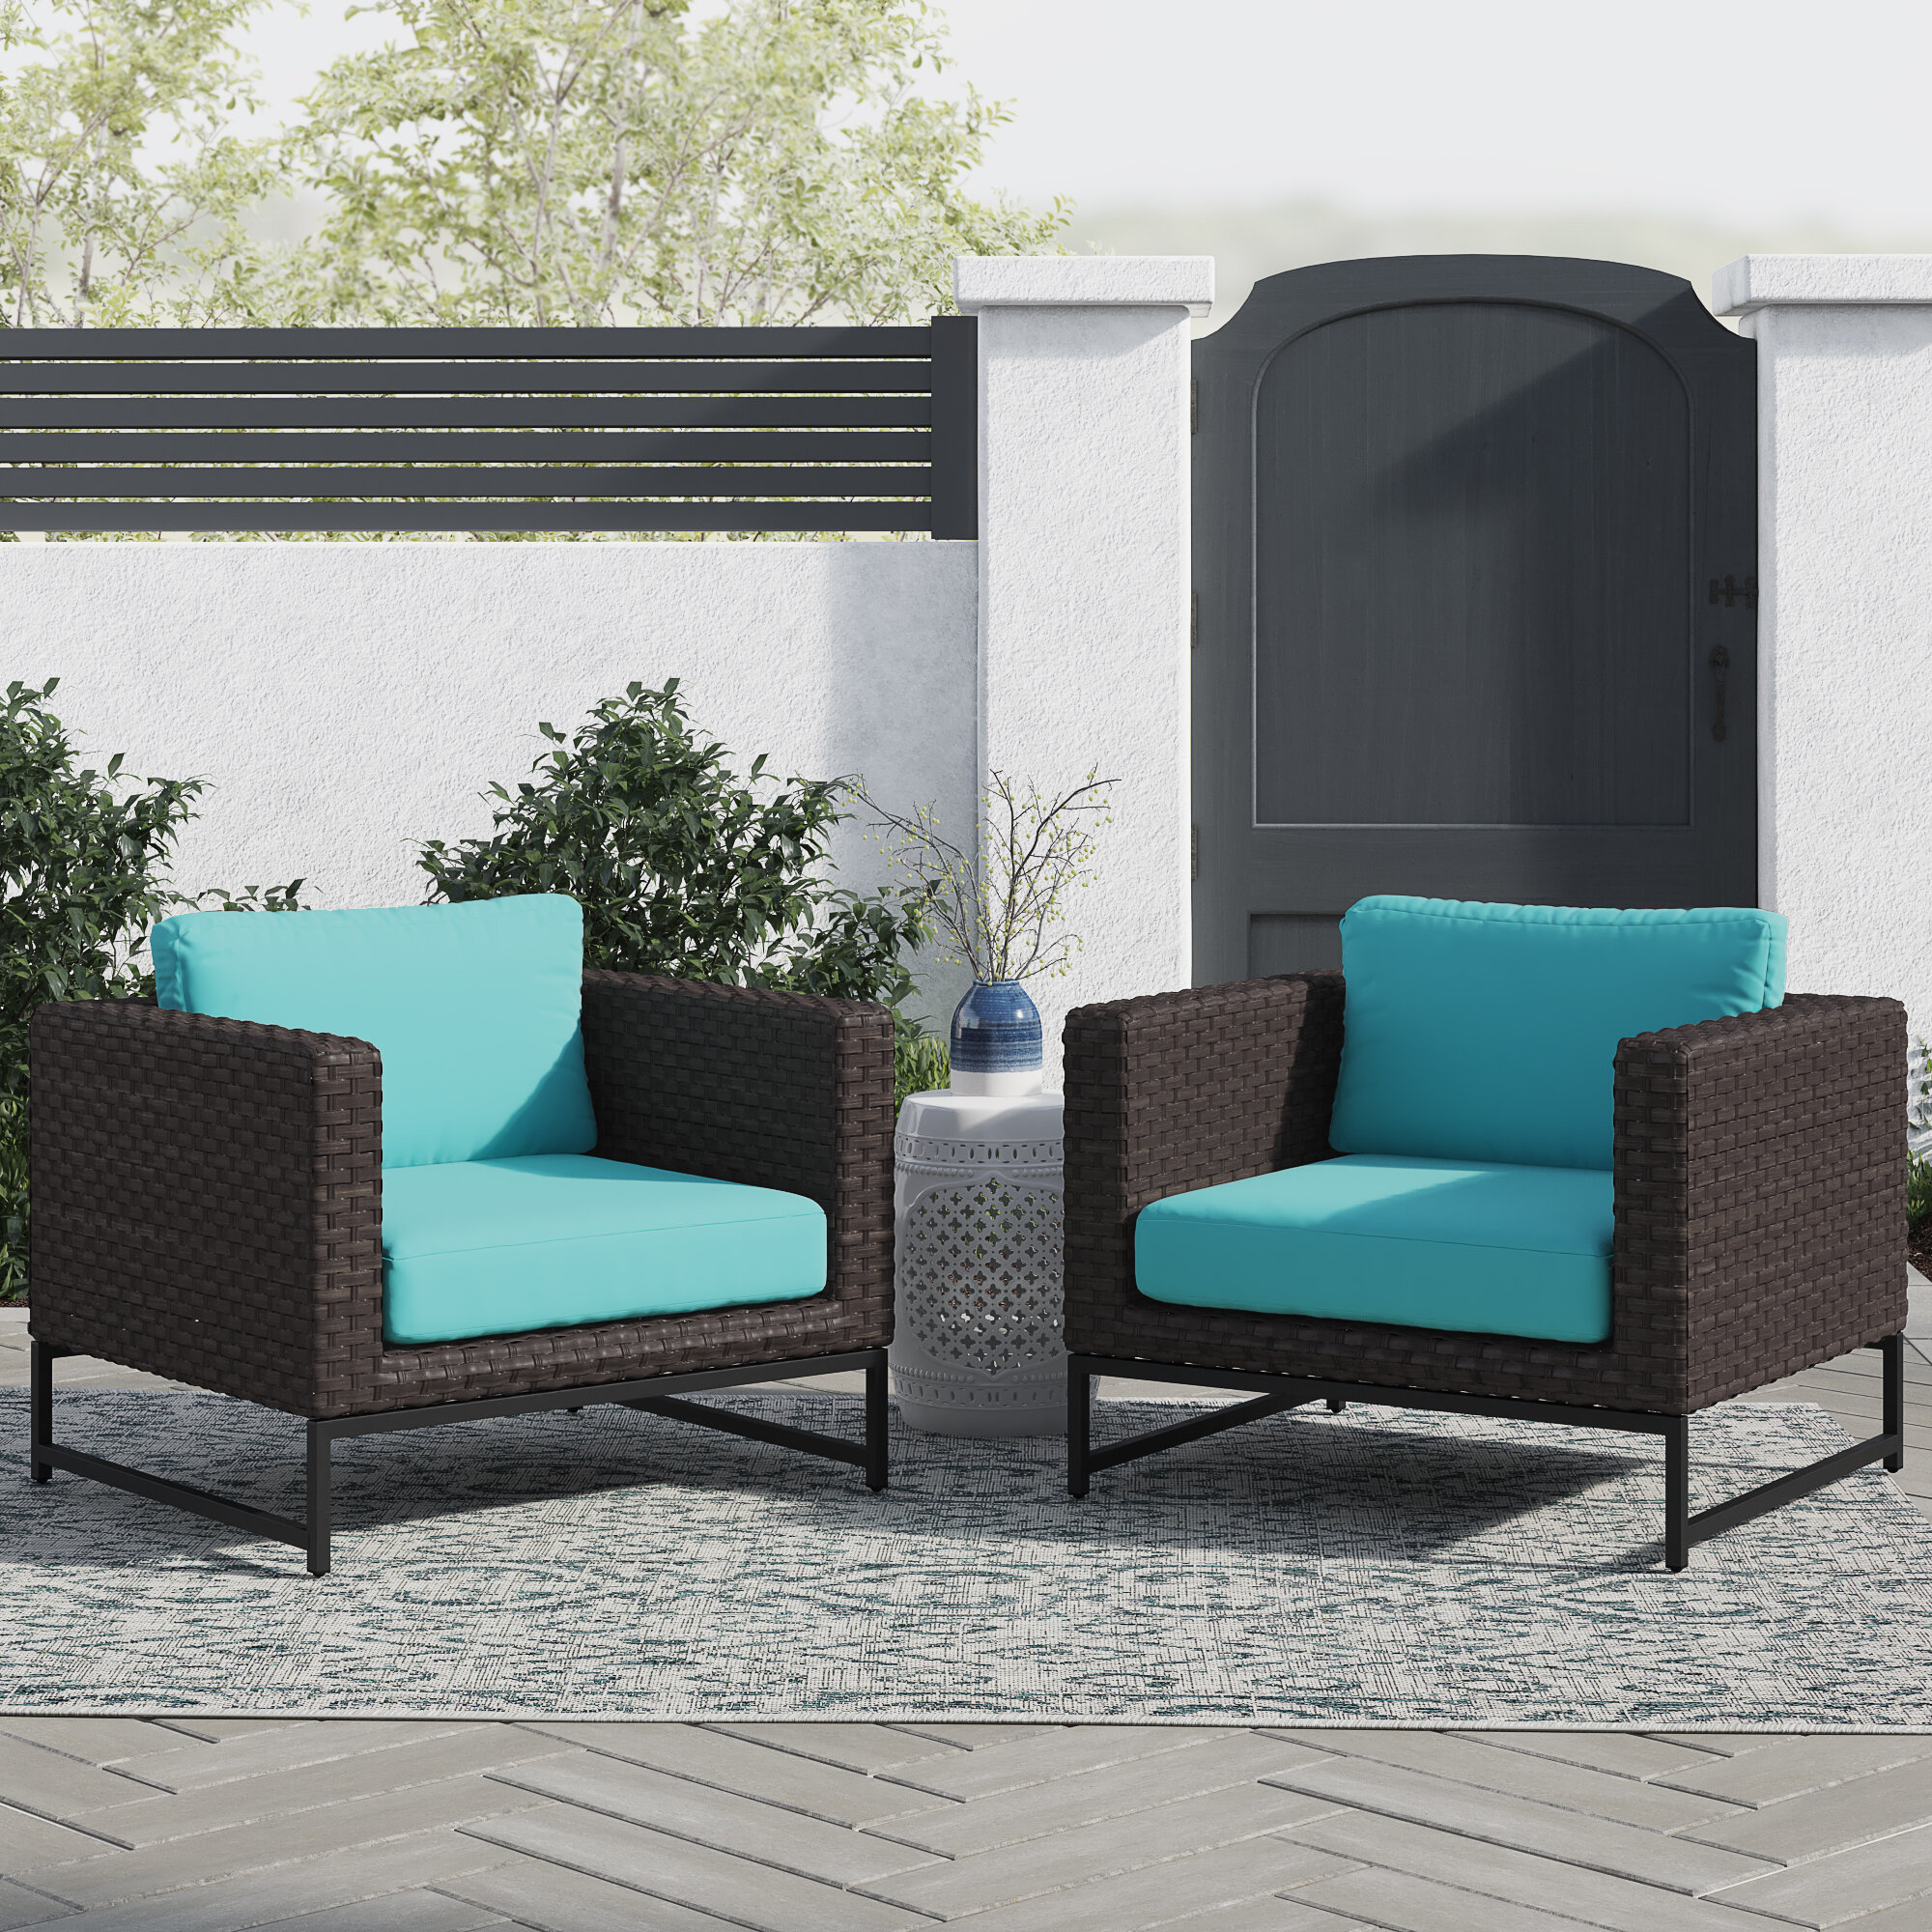 Nauvoo Barcelona Patio Chair With Cushions Reviews Joss Main